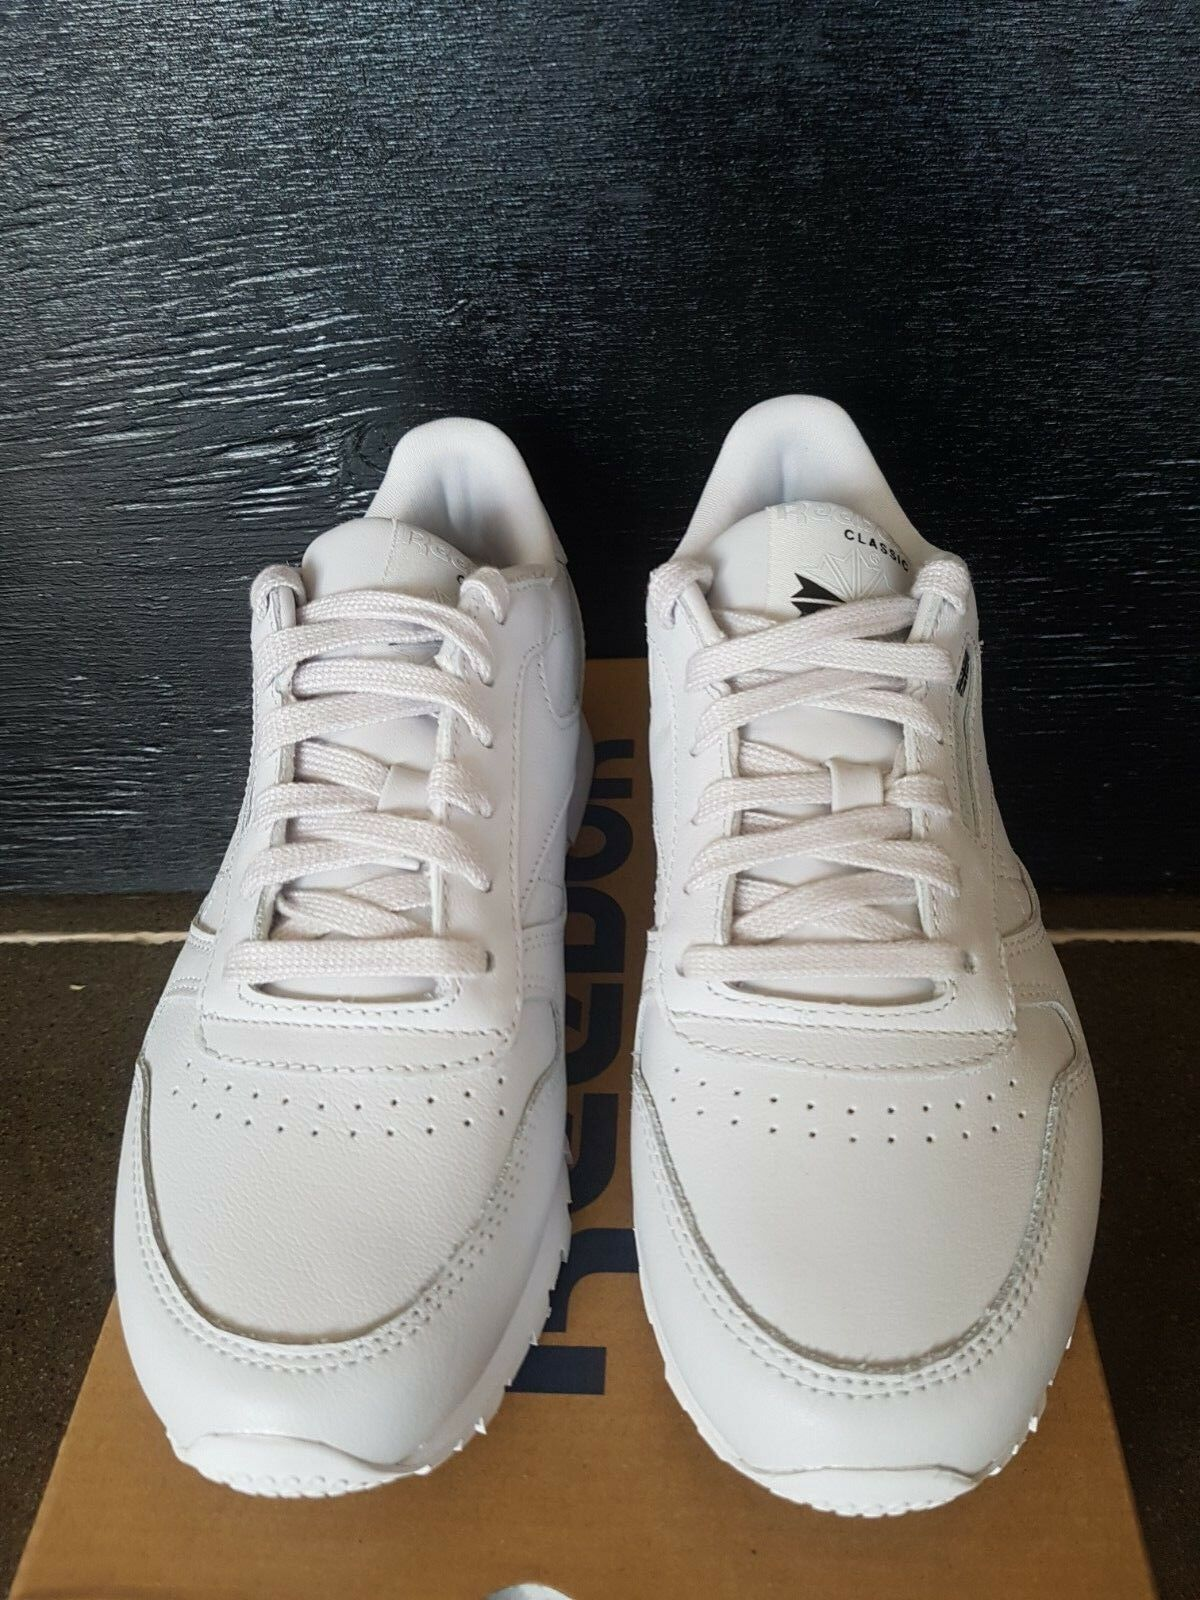 NEW NEW NEW IN THE BOX REEBOK CL LTHR X FACE MUTED PINK CN1479 SHOES FOR WOMEN 0b165b